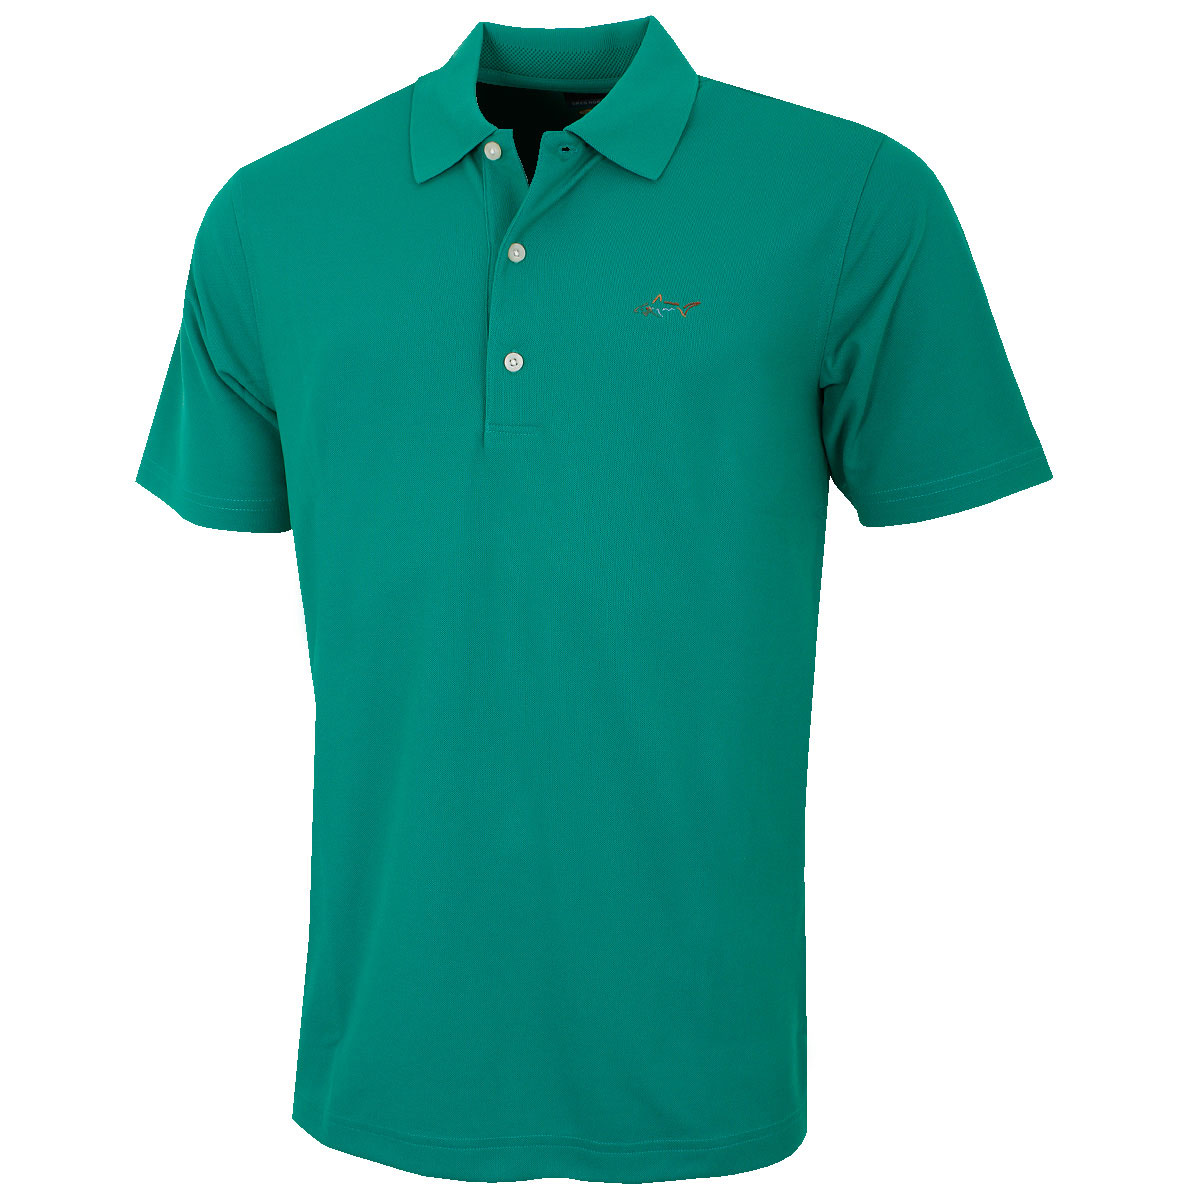 greg norman 2016 mens kx04 performance micro pique golf polo shirt ebay. Black Bedroom Furniture Sets. Home Design Ideas